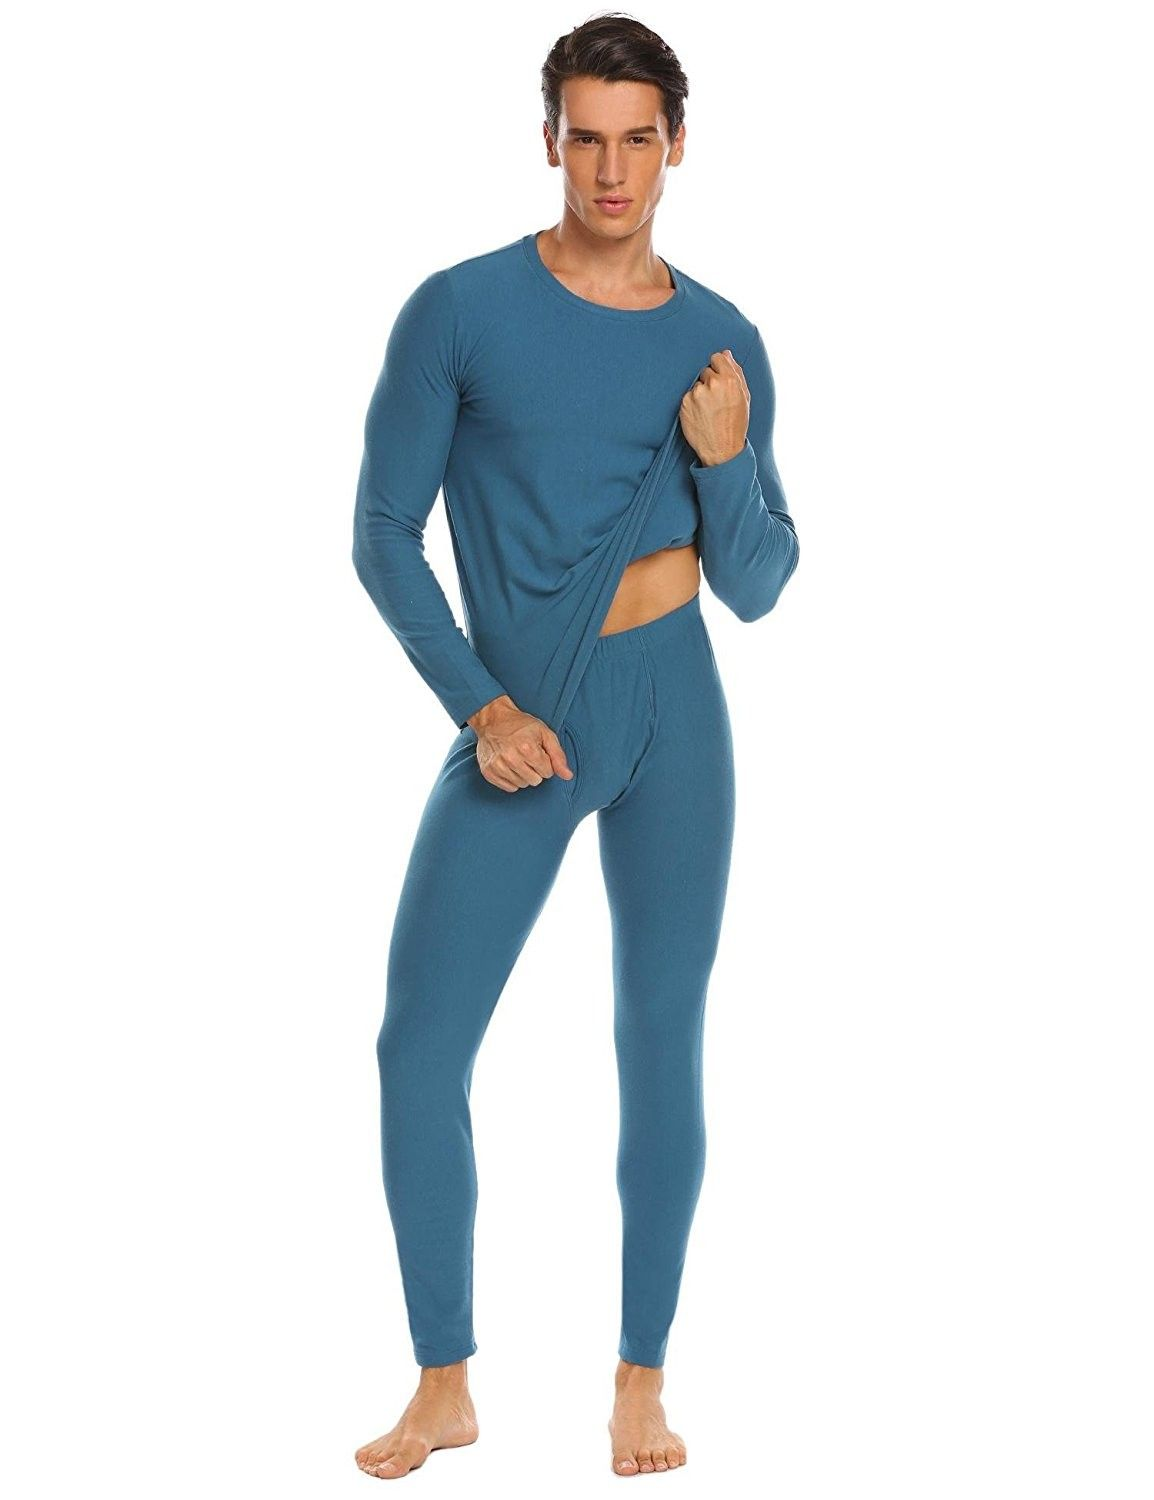 8571dc54b820 Mens Long Johns Cotton Thermal Underwear Fleece Lined Base Layer ...